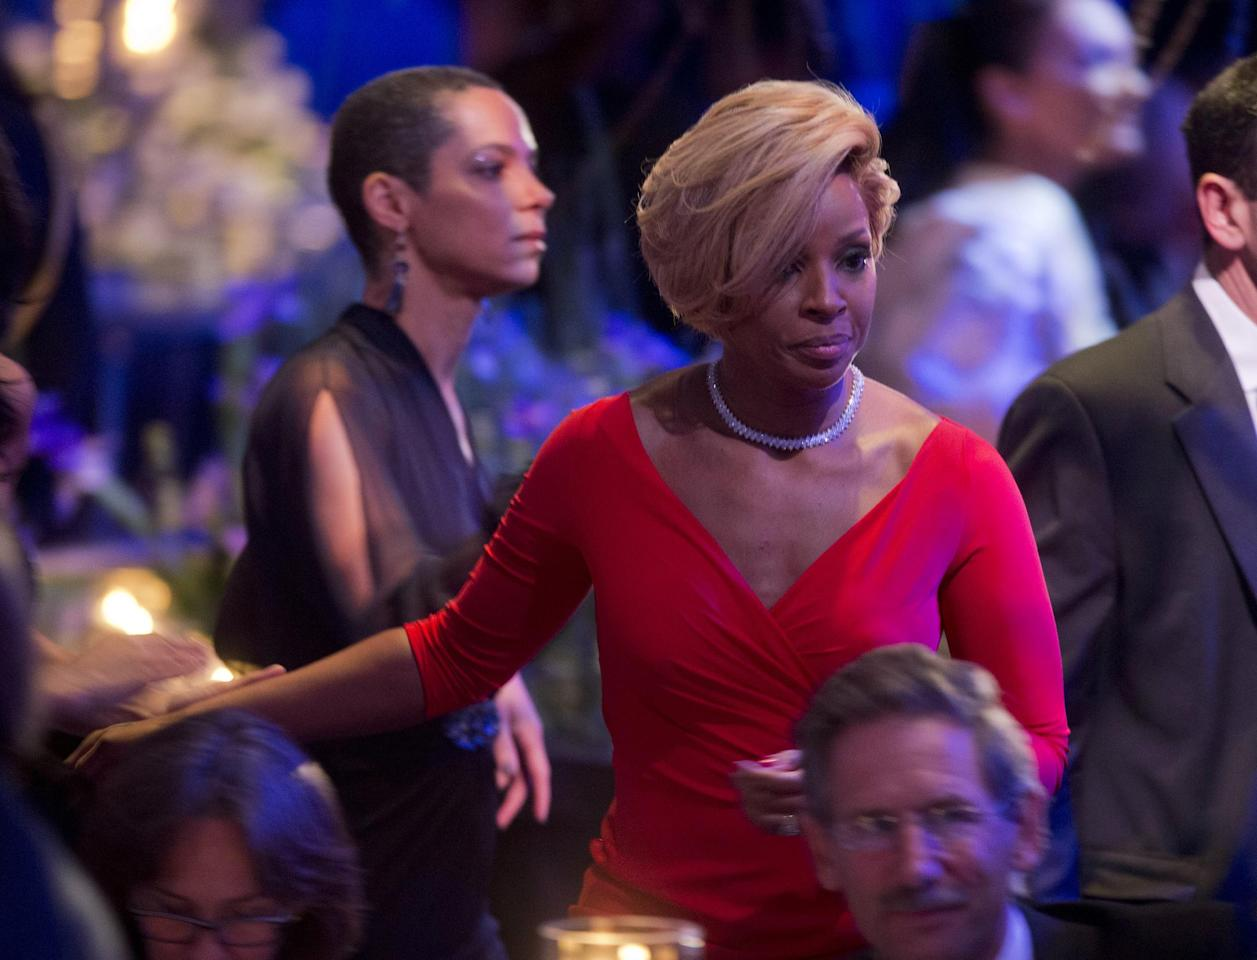 Singer Mary J. Blige arrives at the State Dinner for French President Francois Hollande, Tuesday, Feb. 11, 2014, on the South Lawn of the White House in Washington. Blige will be performing as part of the event later tonight. (AP Photo/Pablo Martinez Monsivais)